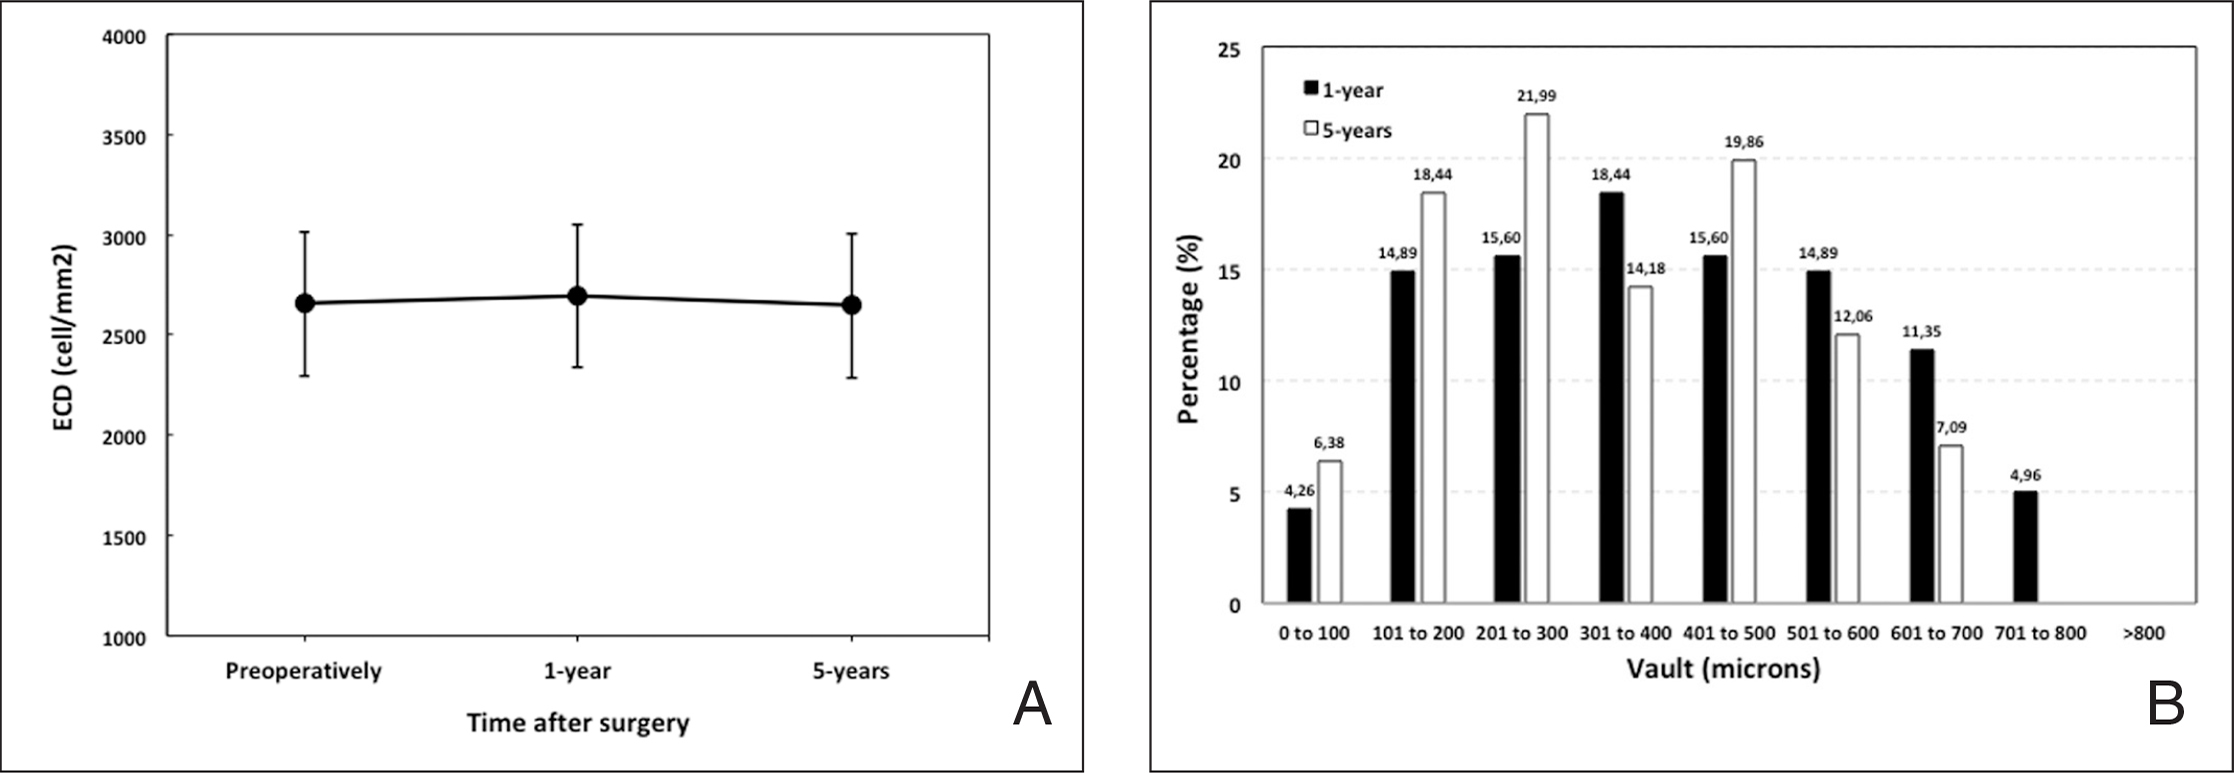 (A) Evolution of the mean endothelial cell density (ECD) (cells/mm2), for the whole follow-up period. Errors bars represent the standard deviation. (B) Distribution of eyes according to the vault (µm), at 1 and 5 years postoperatively.